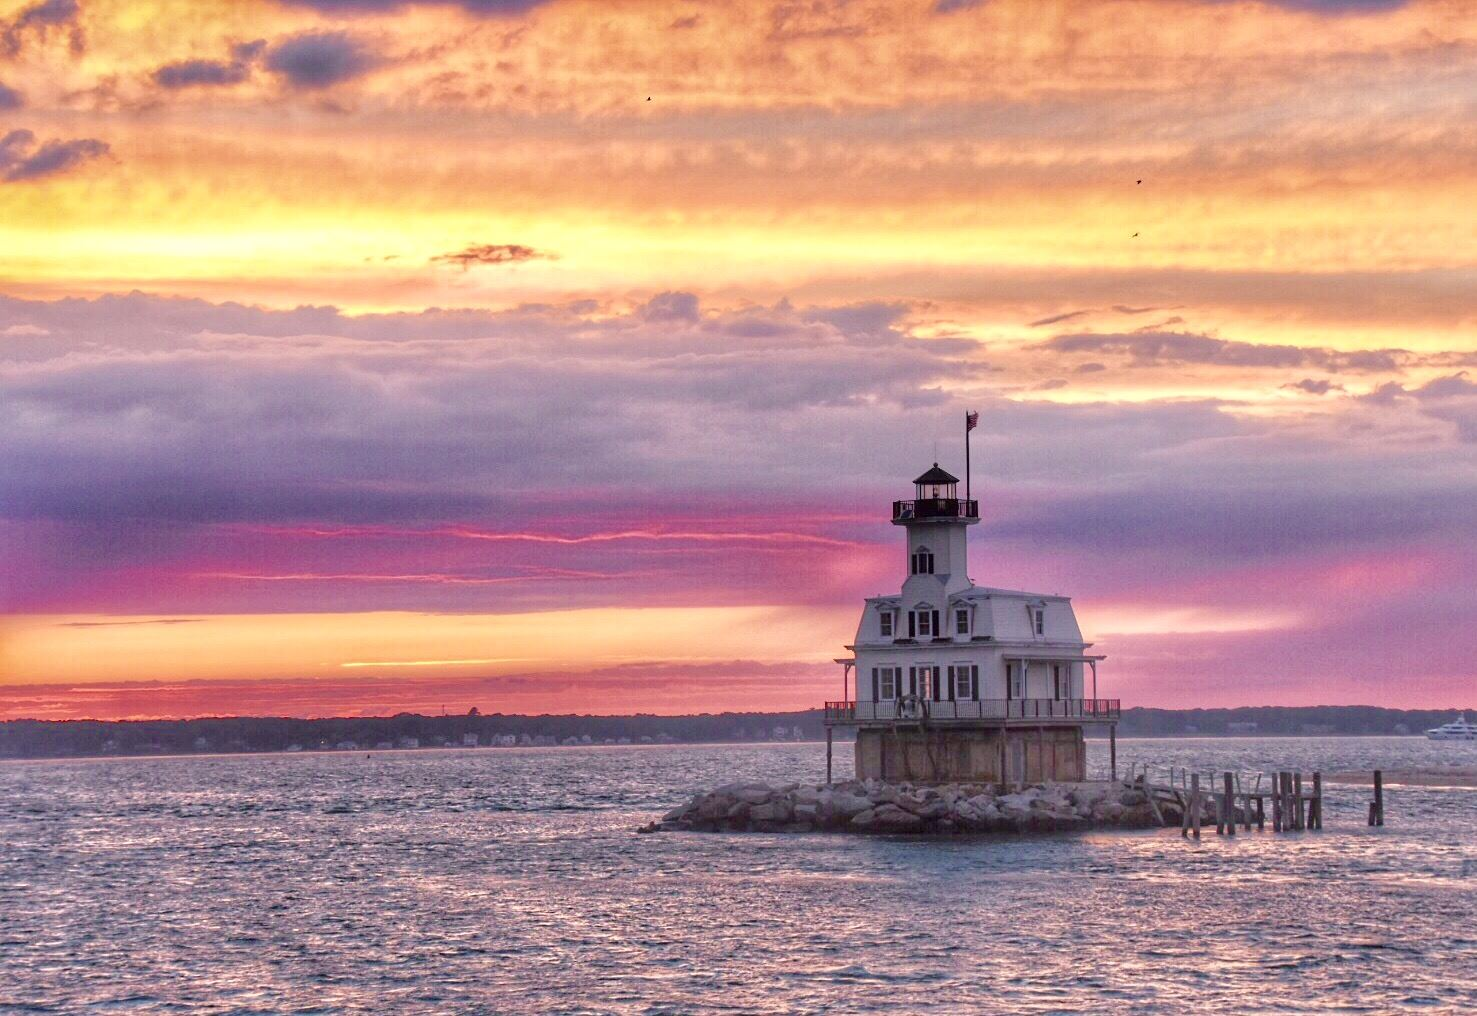 Images of Southold